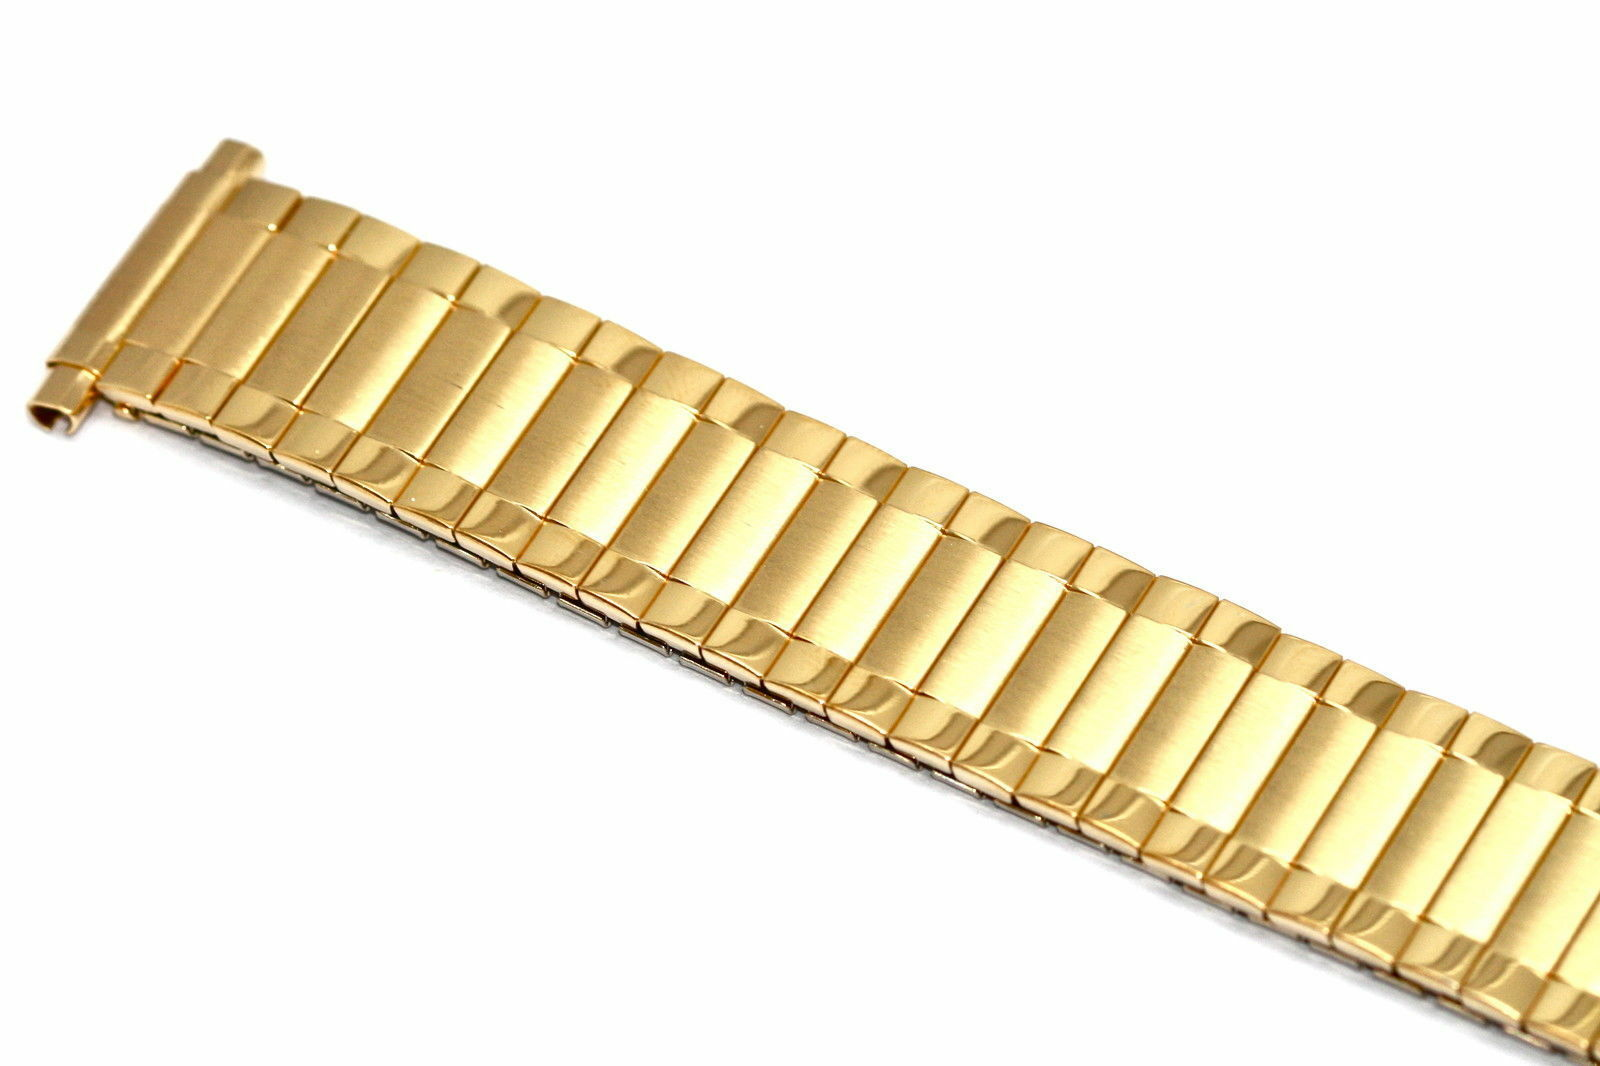 Primary image for SPEIDEL 16-22MM EXTRA LONG GOLD RADIAL TWIST O FLEX EXPANSION WATCH BAND STRAP